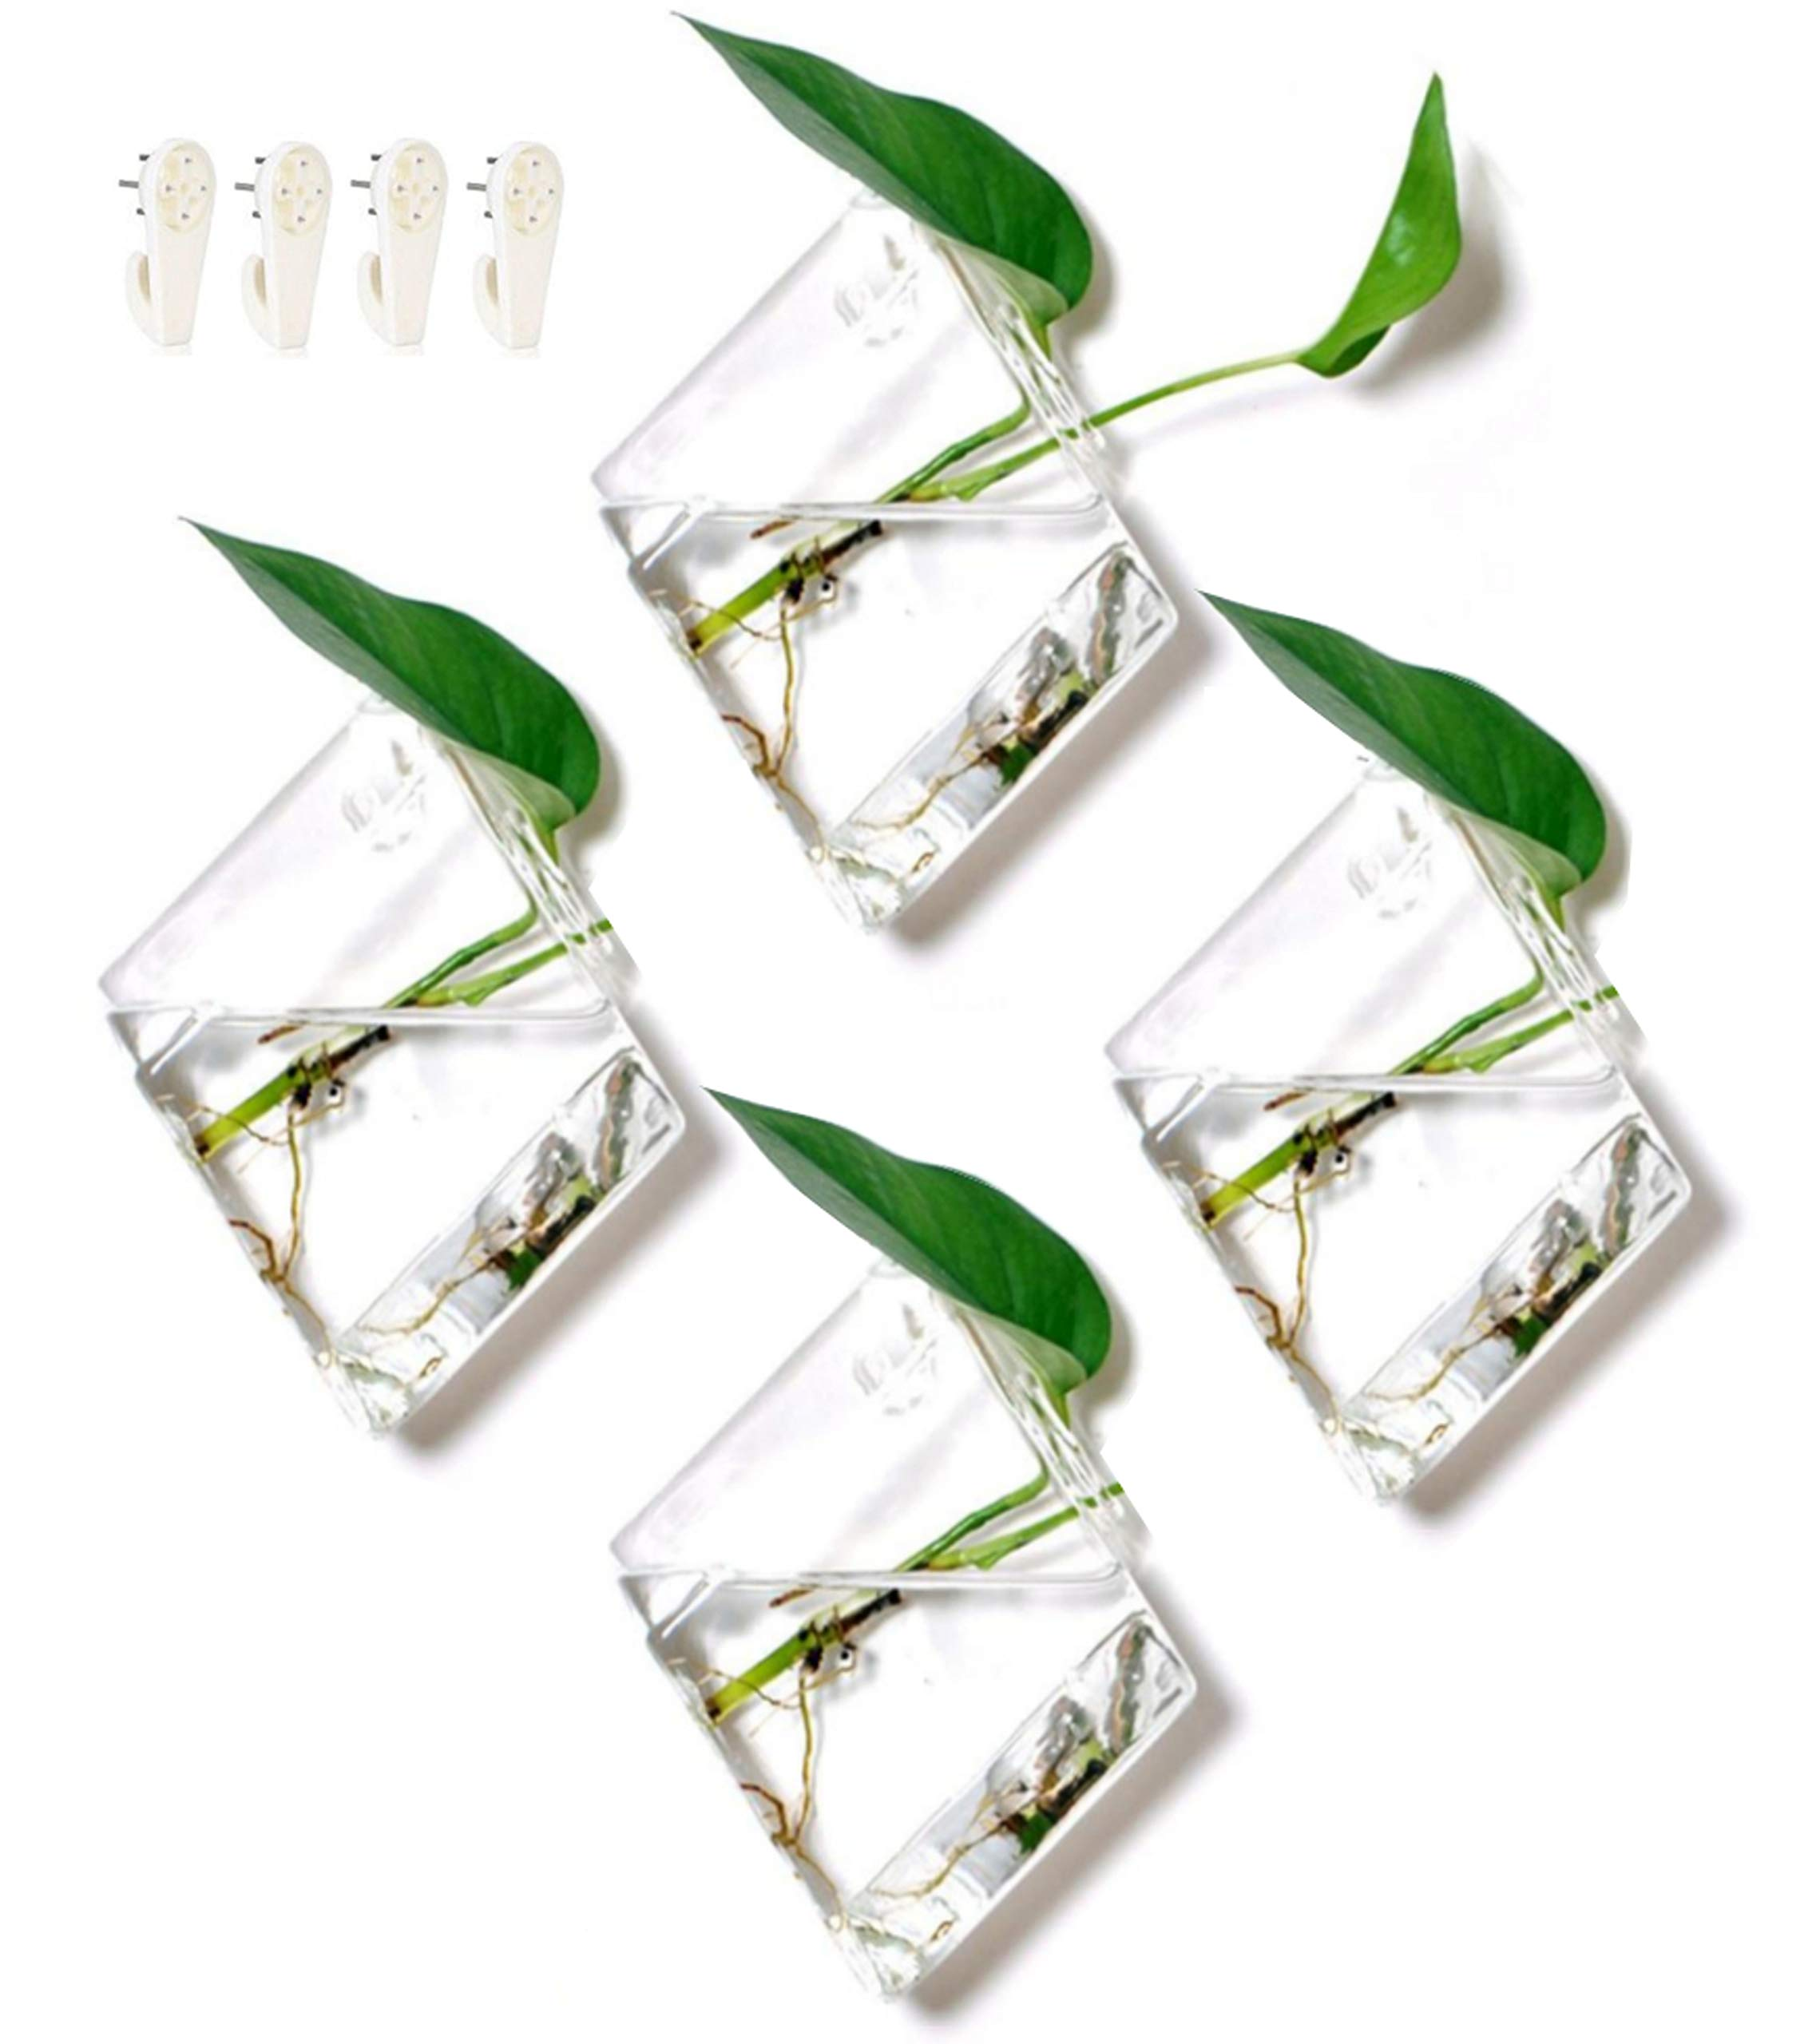 Set of 4 Glass Terrarium Hanging Wall Planters, Diamond Air Plants Succulent Container GeoTerrariums